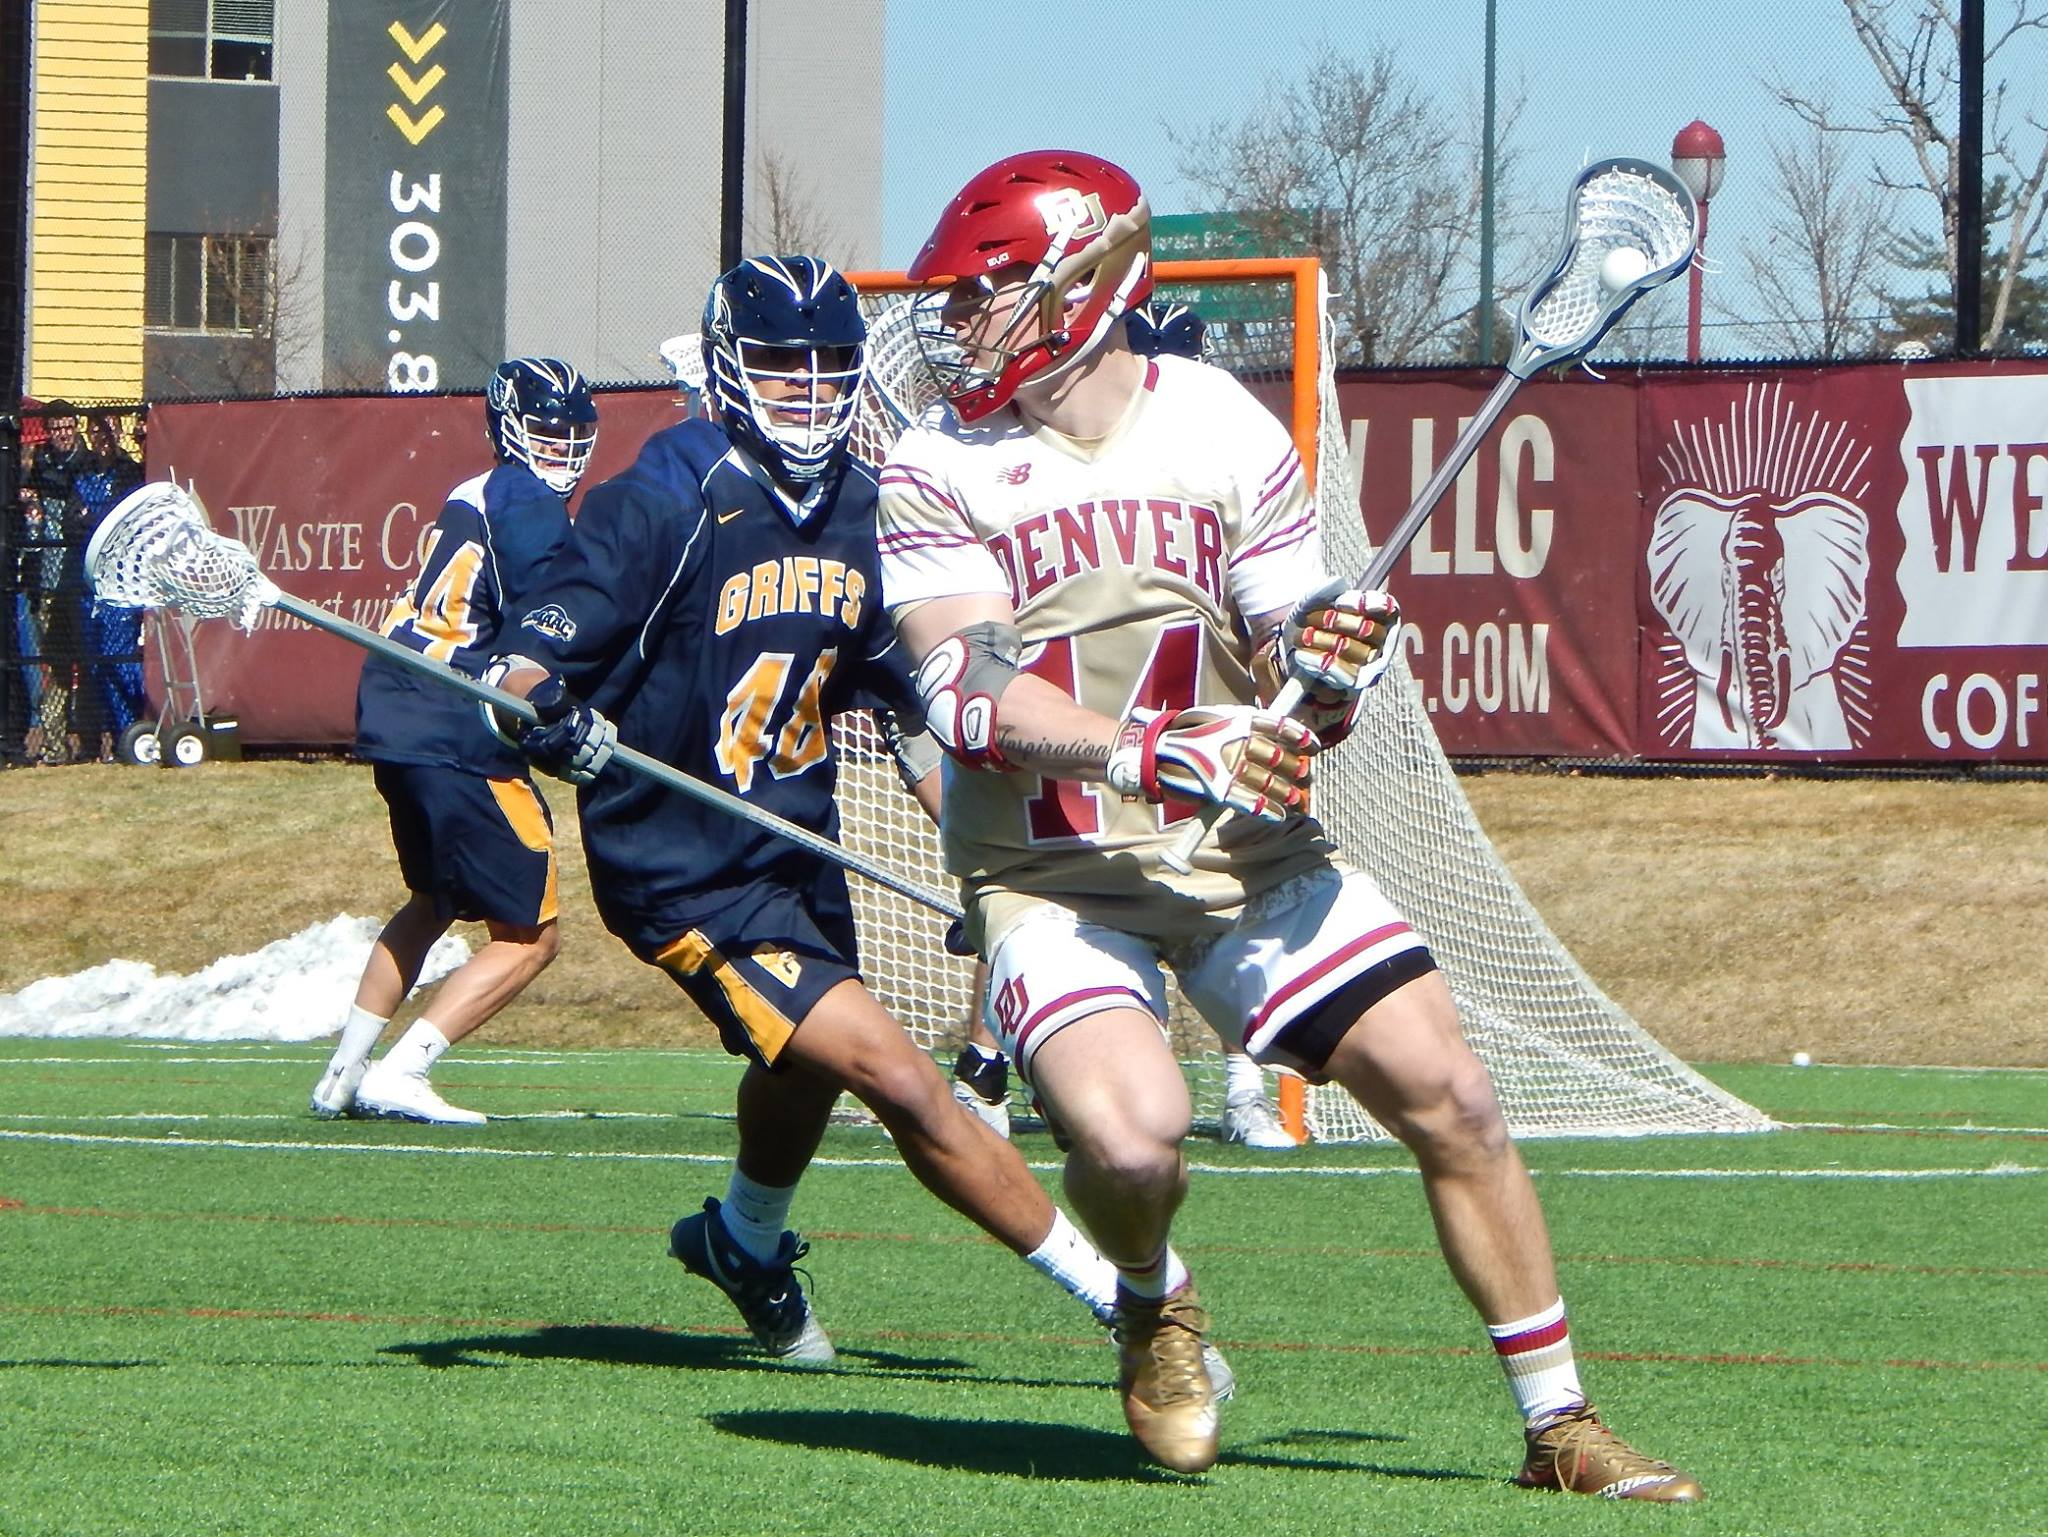 Jeremy Bosher of the Denver Pioneers vs Canisius Golden Griffins (Photo credit: Ian Neadle)